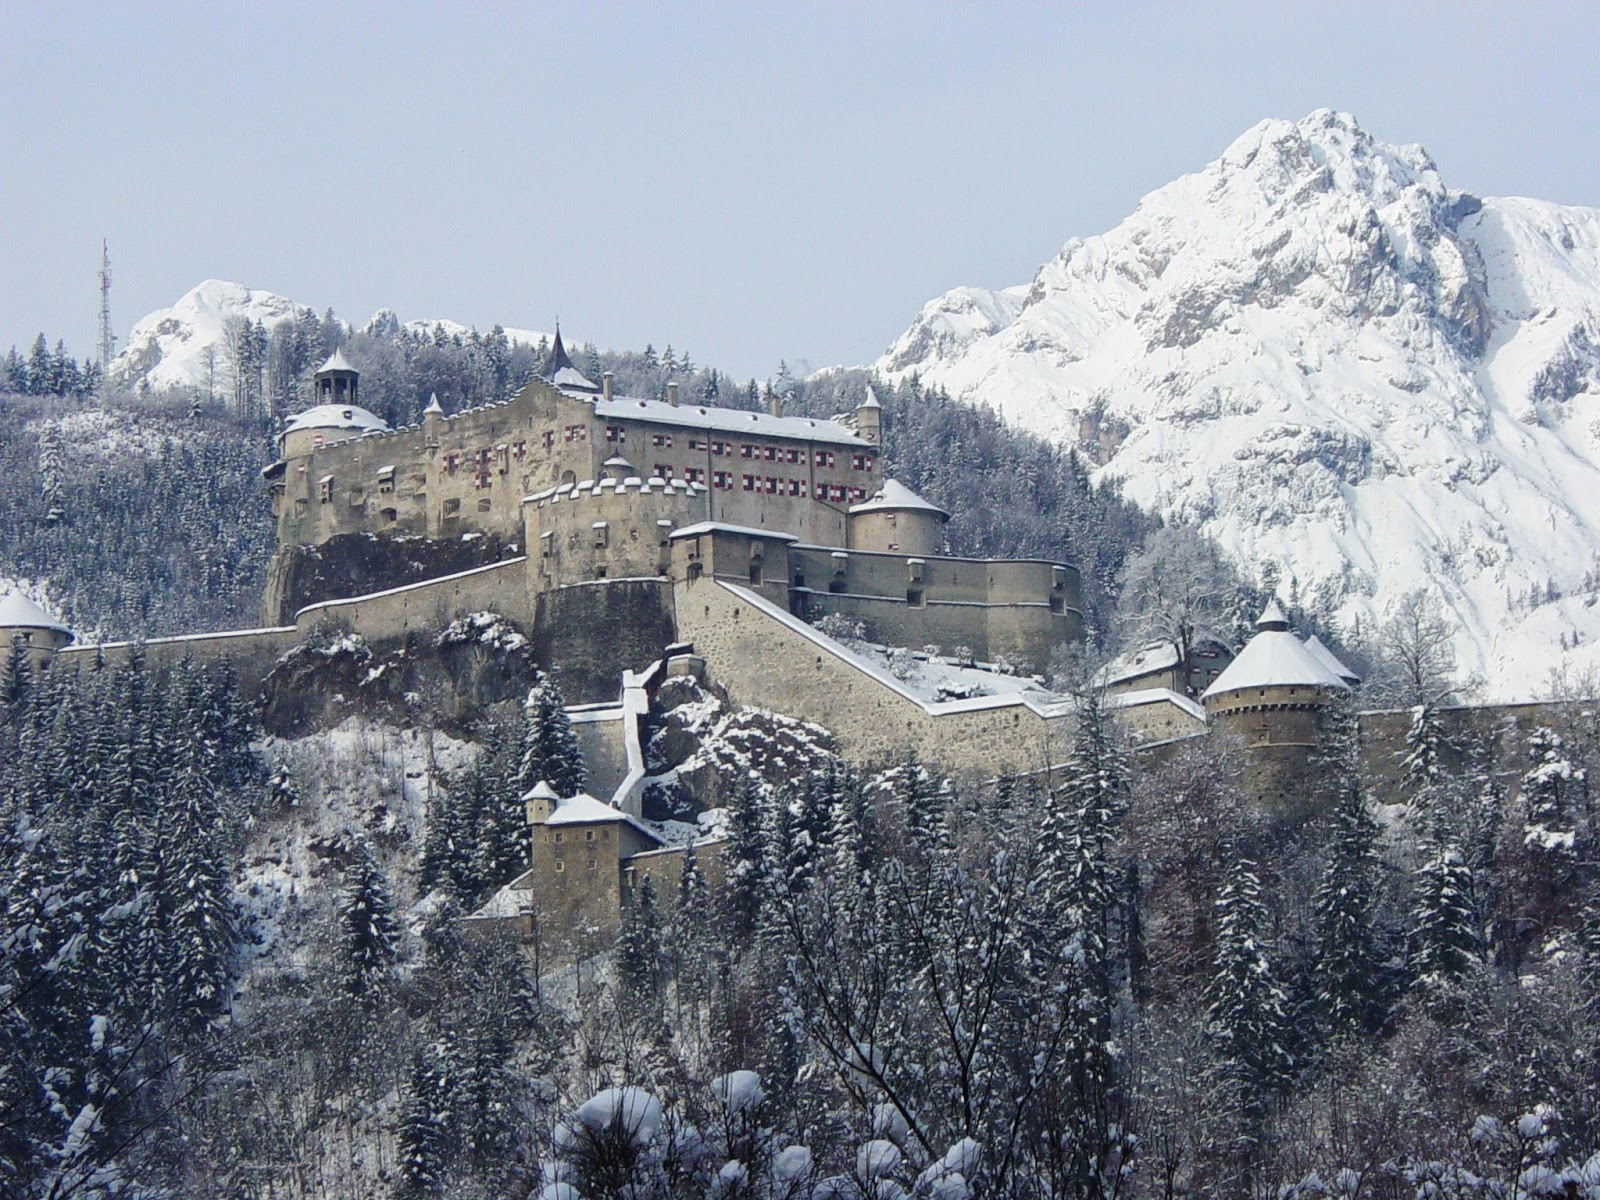 Burg_Hohenwerfen_2__Beautiful_Castles_With_Breathtaking_Scenery.JPG